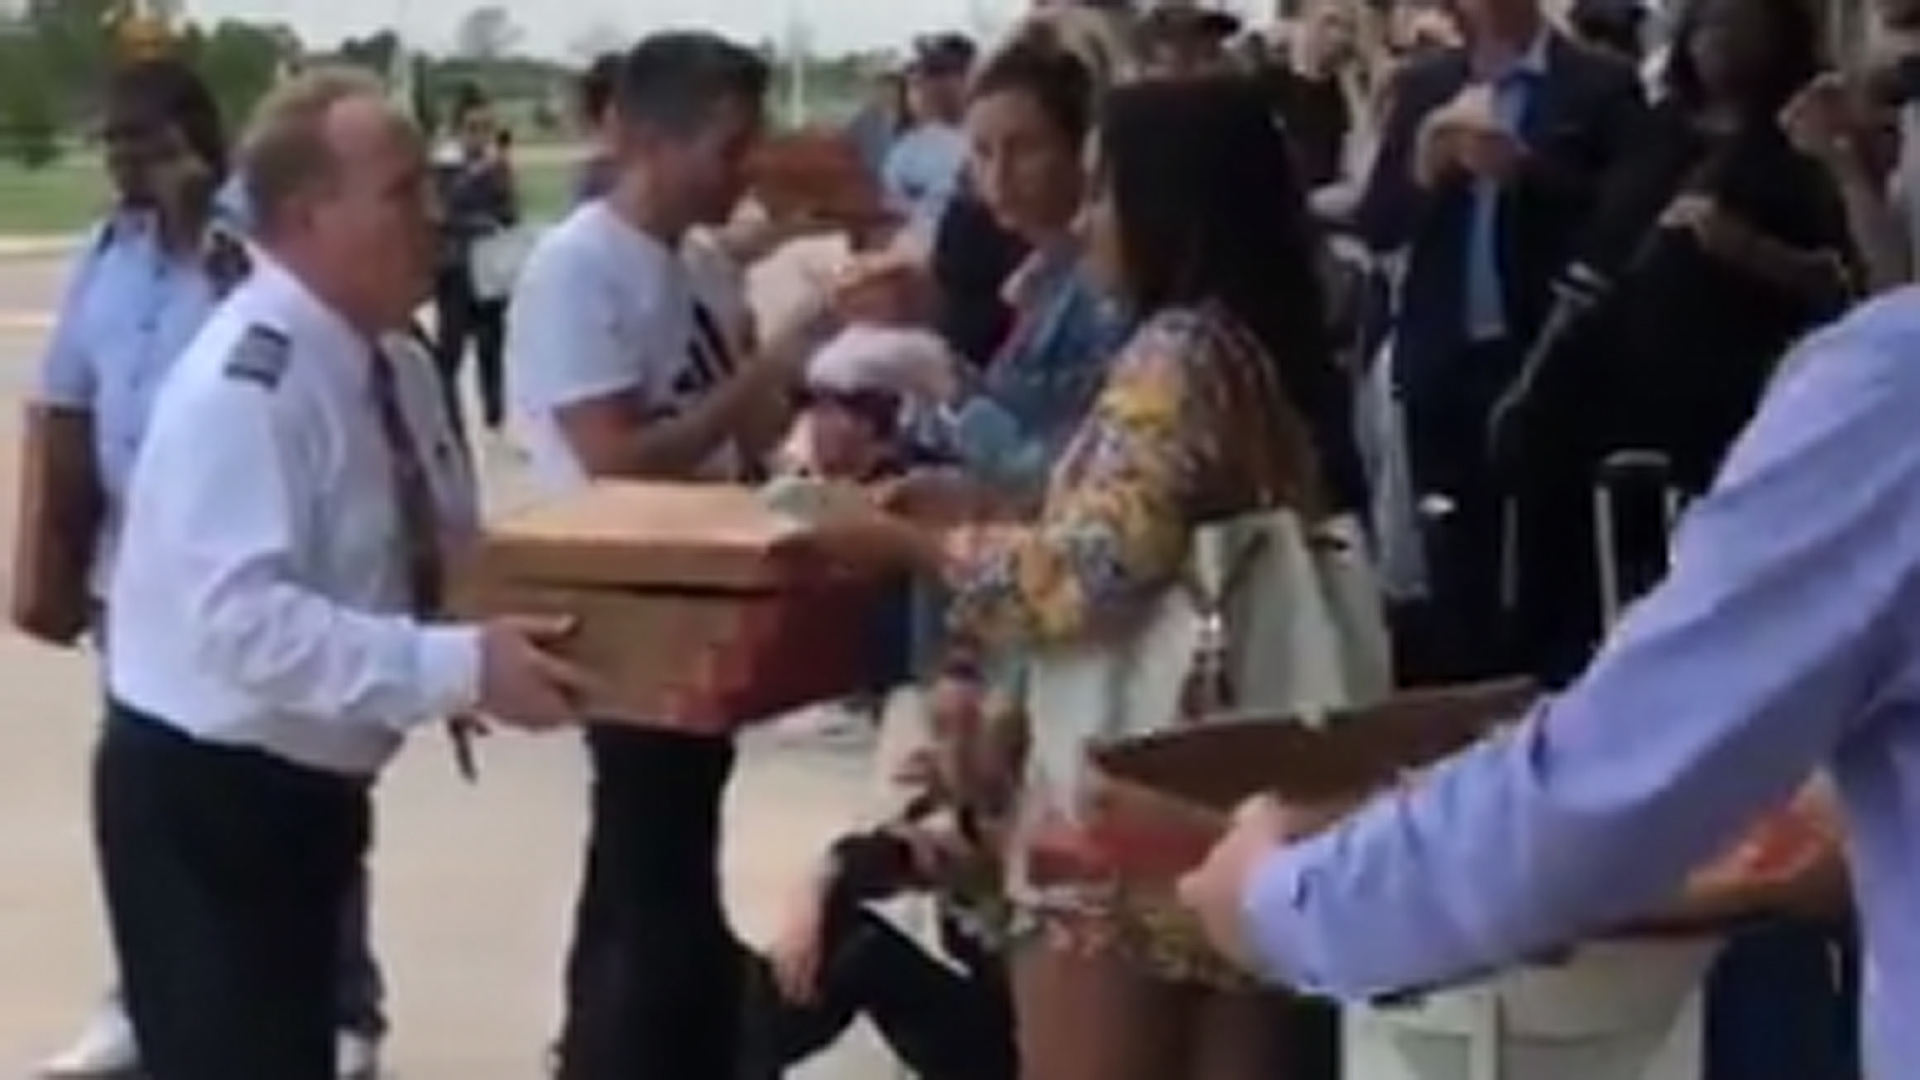 A captain brings pizza to passengers stranded in Texas. (Credit: @J_reigns2)